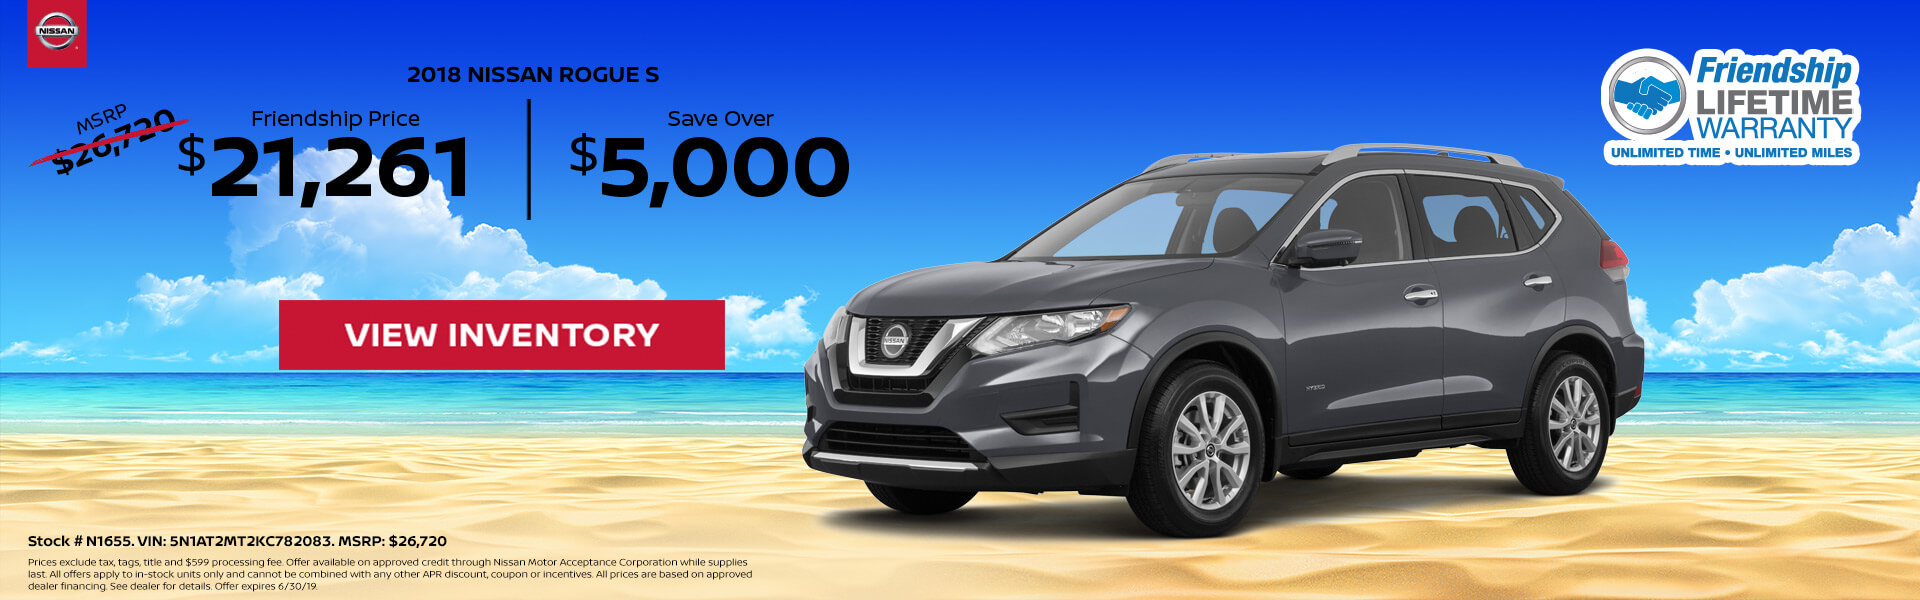 Nissan Rogue $21,261 Purchase